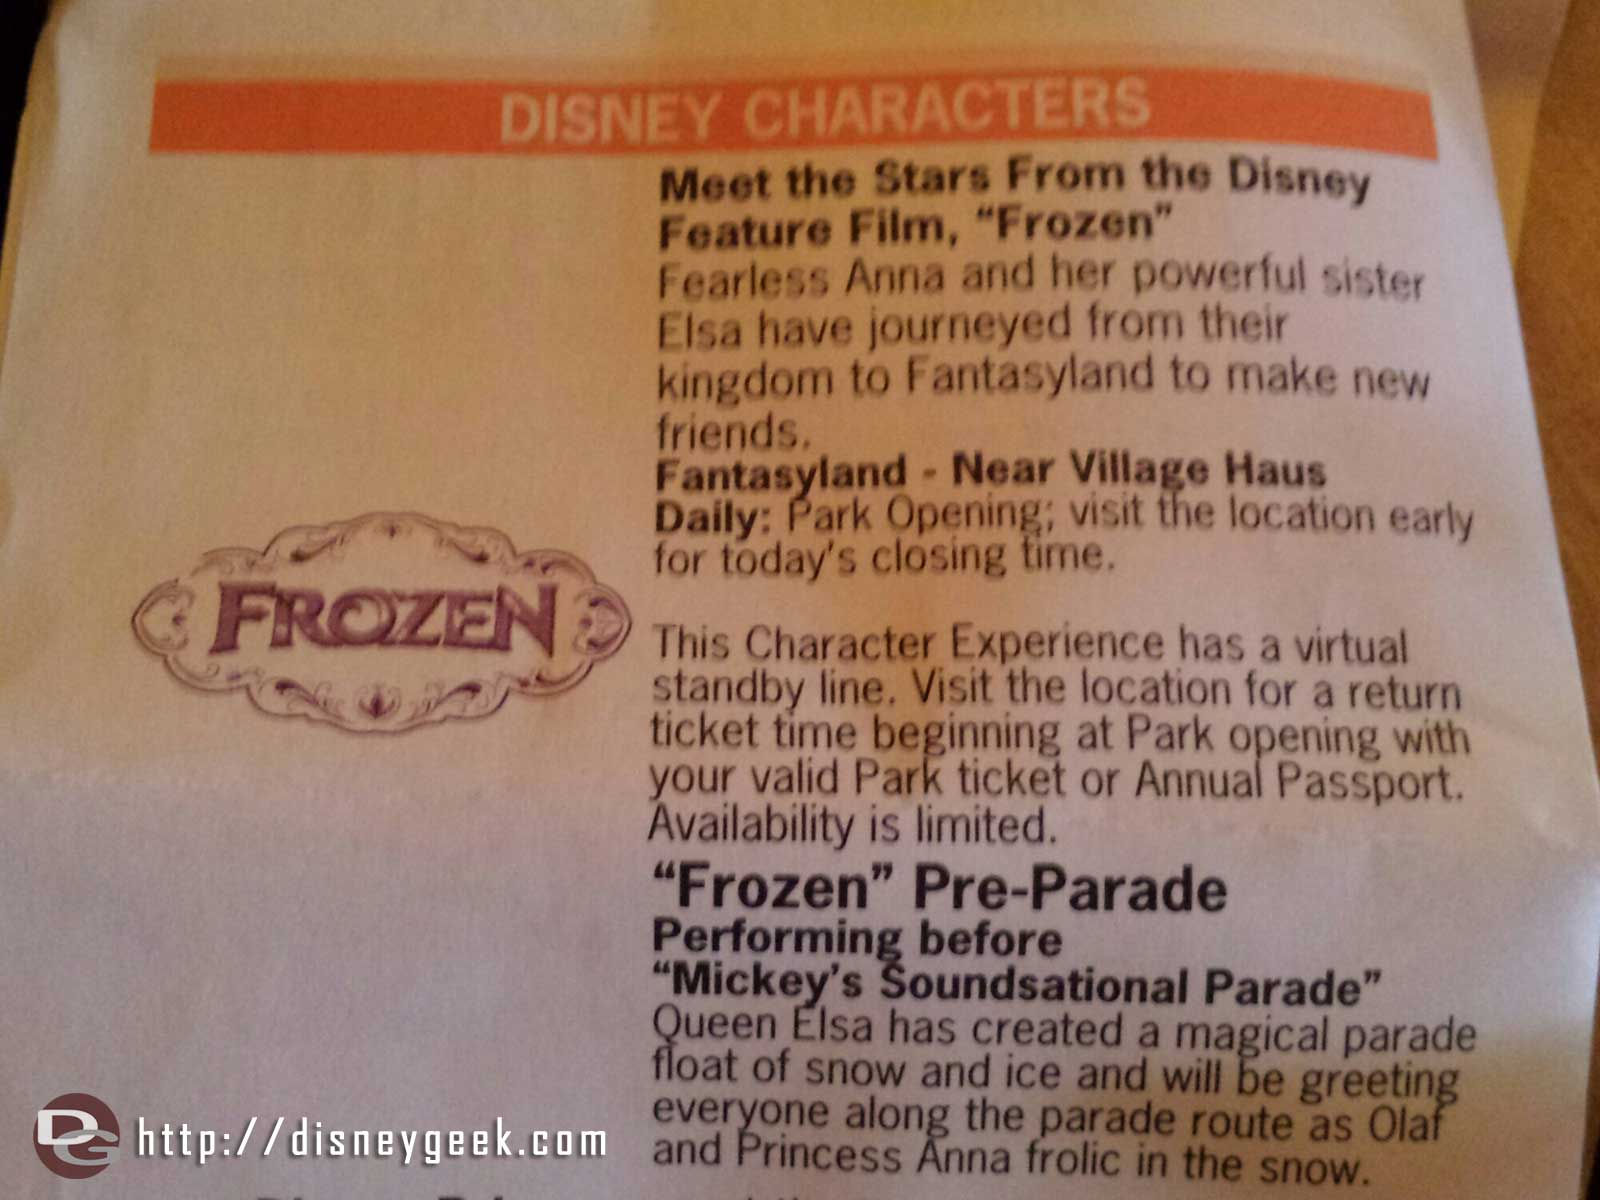 The #Frozen virtual standby line description in the timesguide this week #Disneyland